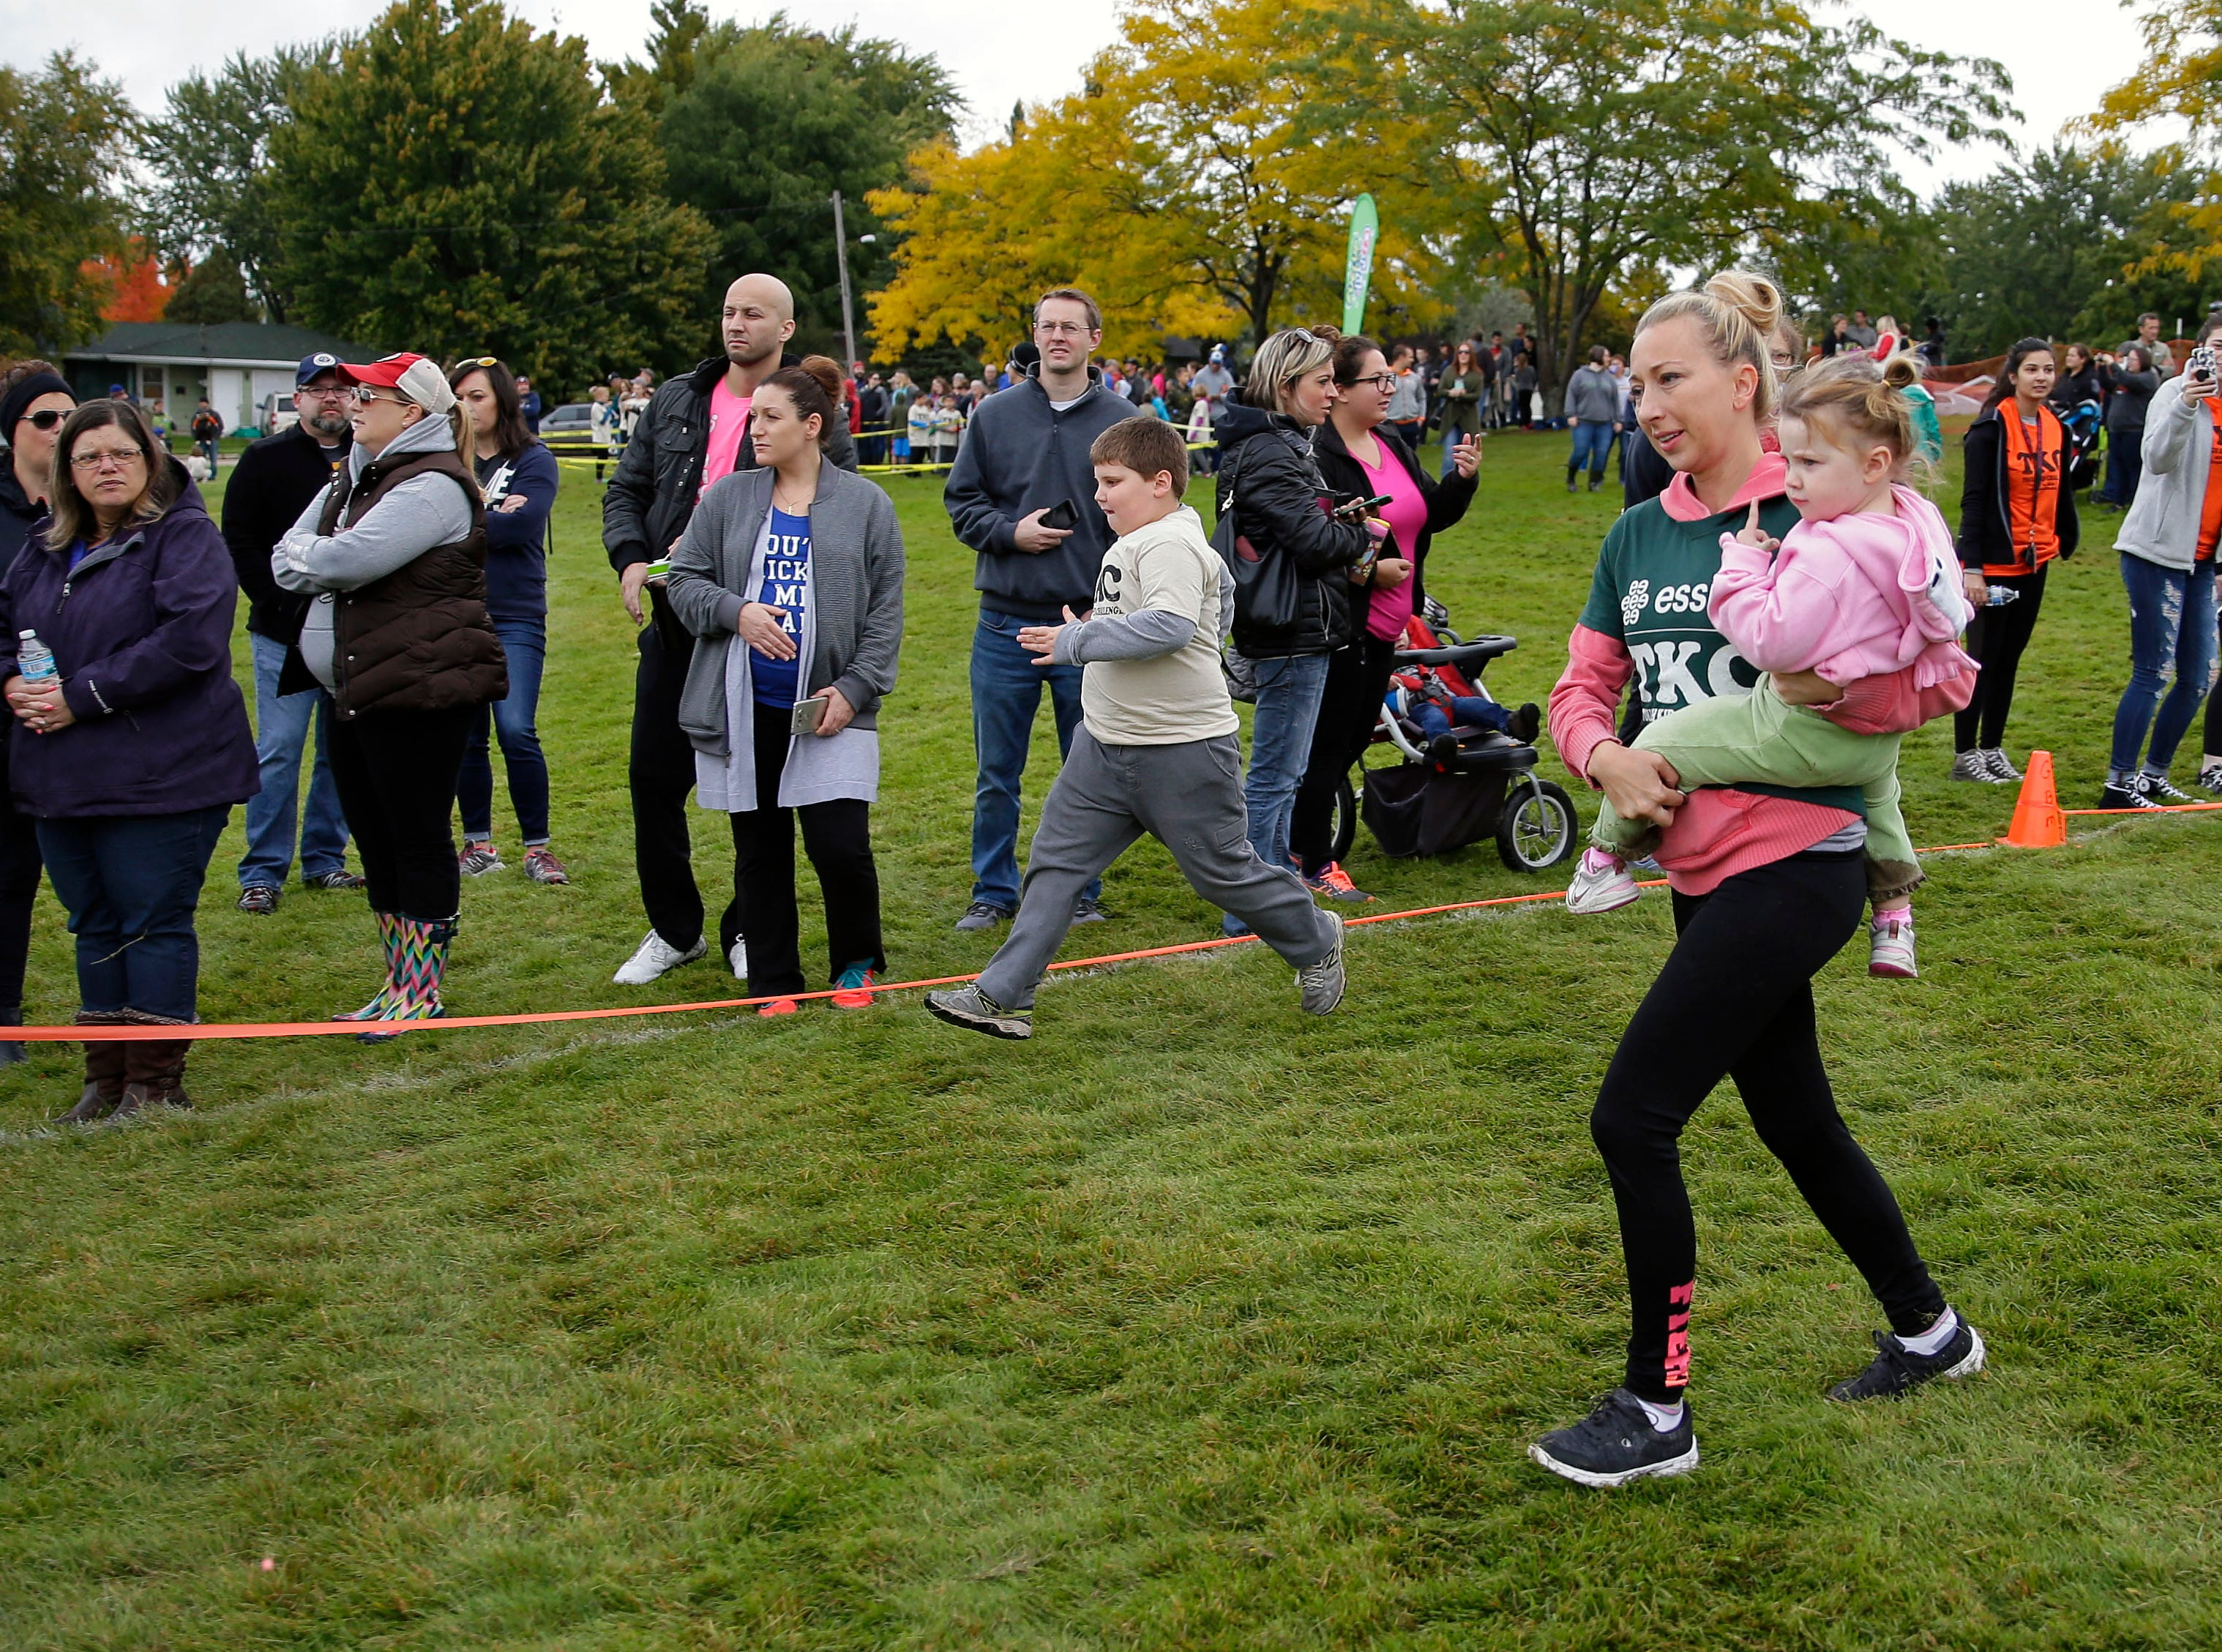 Jen Thomack carries Teagan Deering during the start as they keep an on another part of their team in front of them during the Essity Fox Valley Tough Kid Challenge Saturday, October 6, 2018, at Highlands Elementary School in Appleton, Wis. The event raised funds for Physical Education Departments in Appleton.